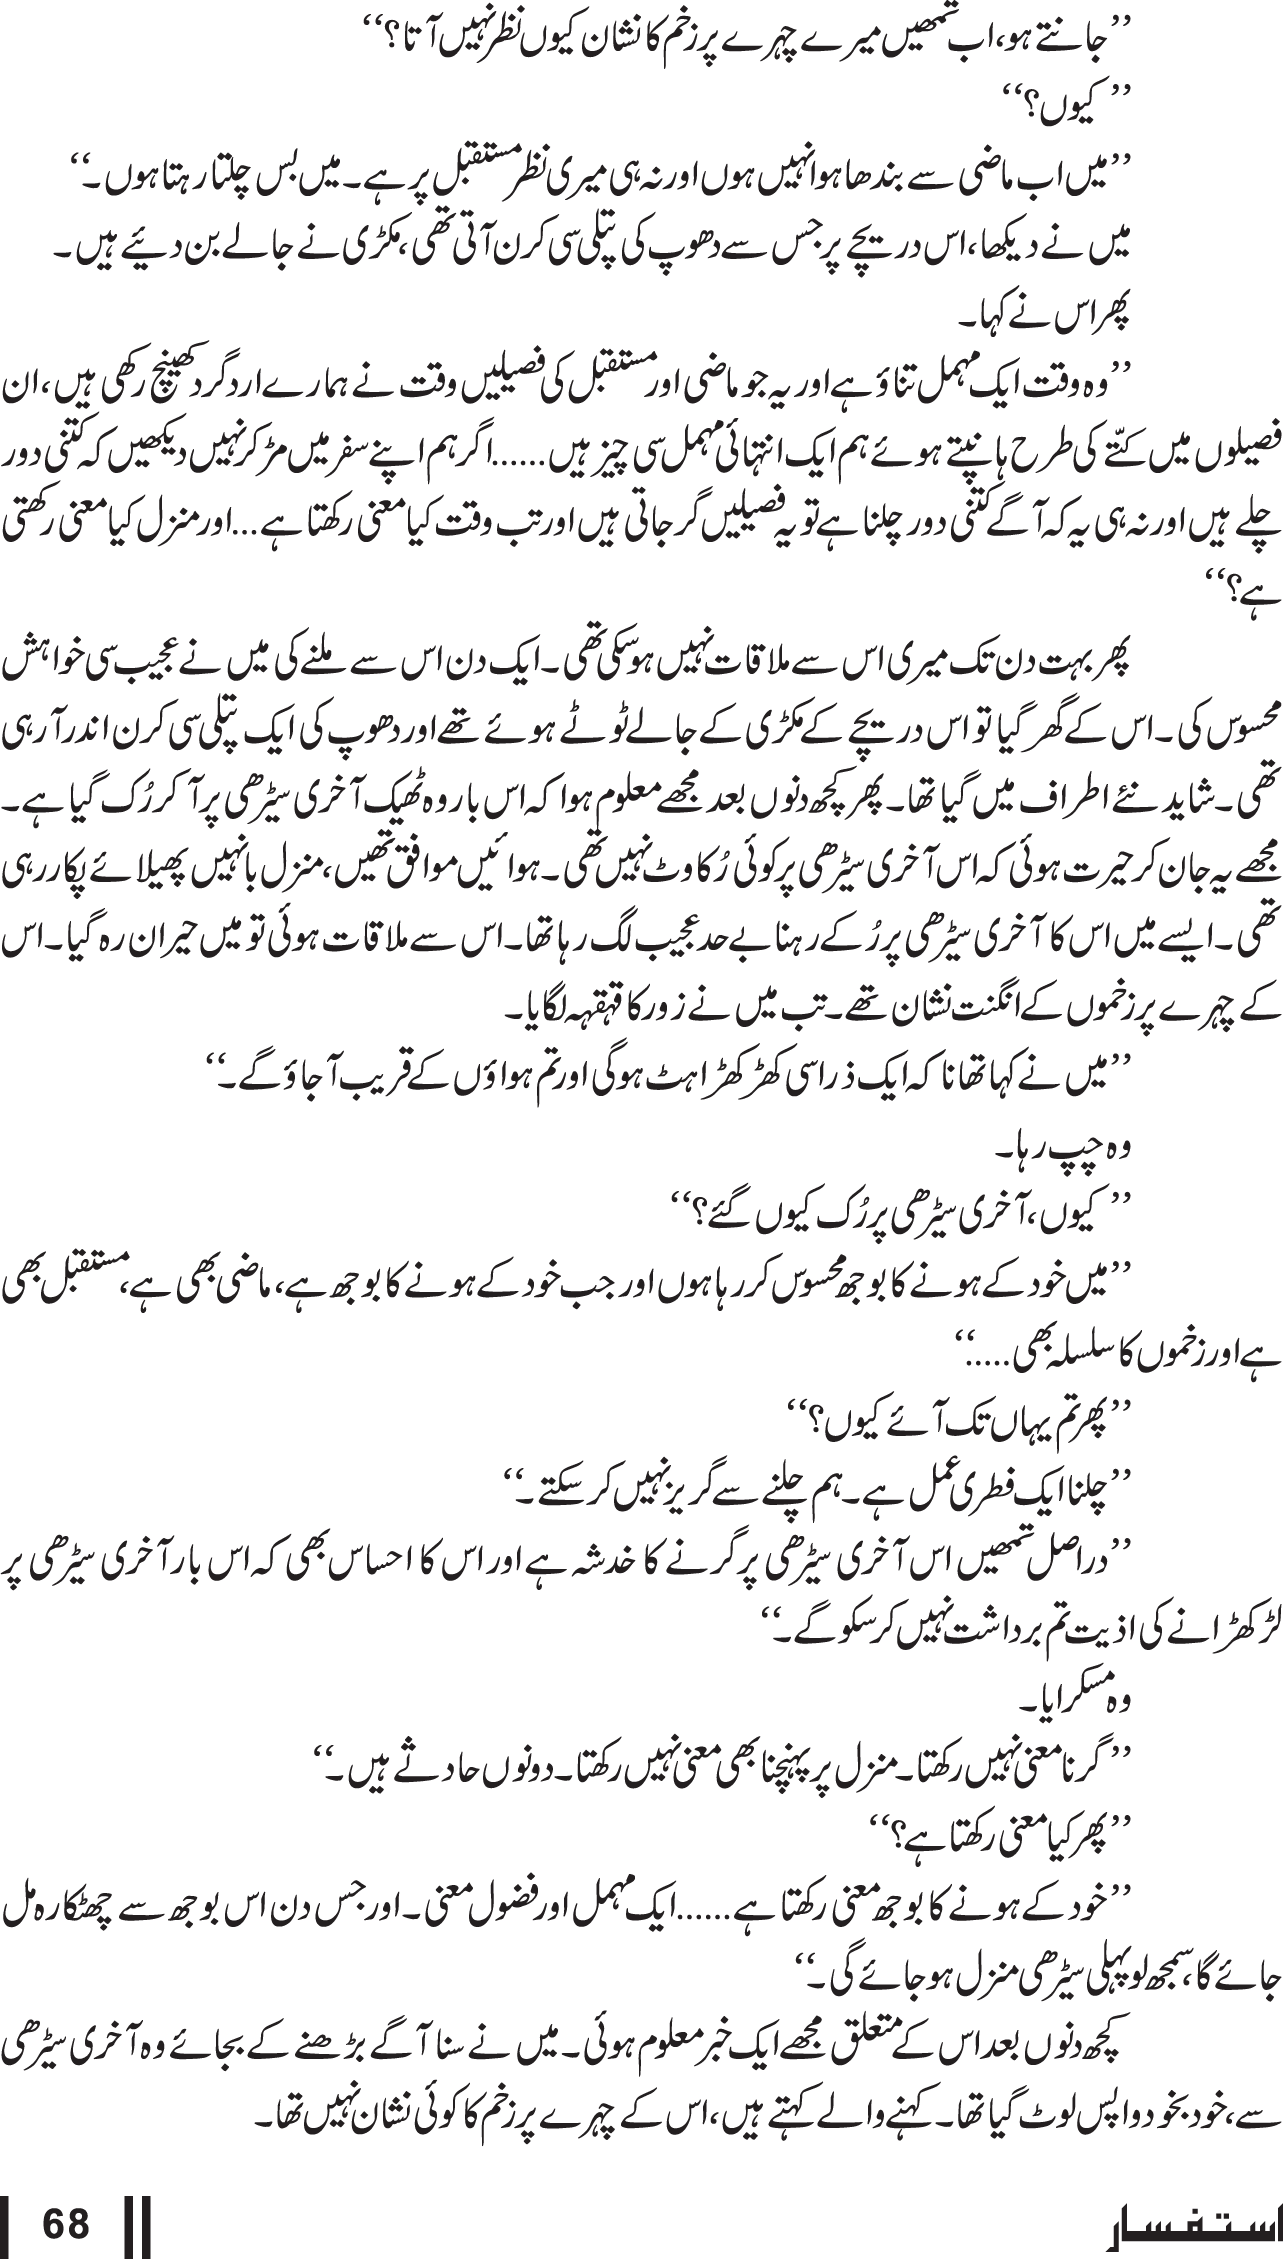 Second_Issue-68